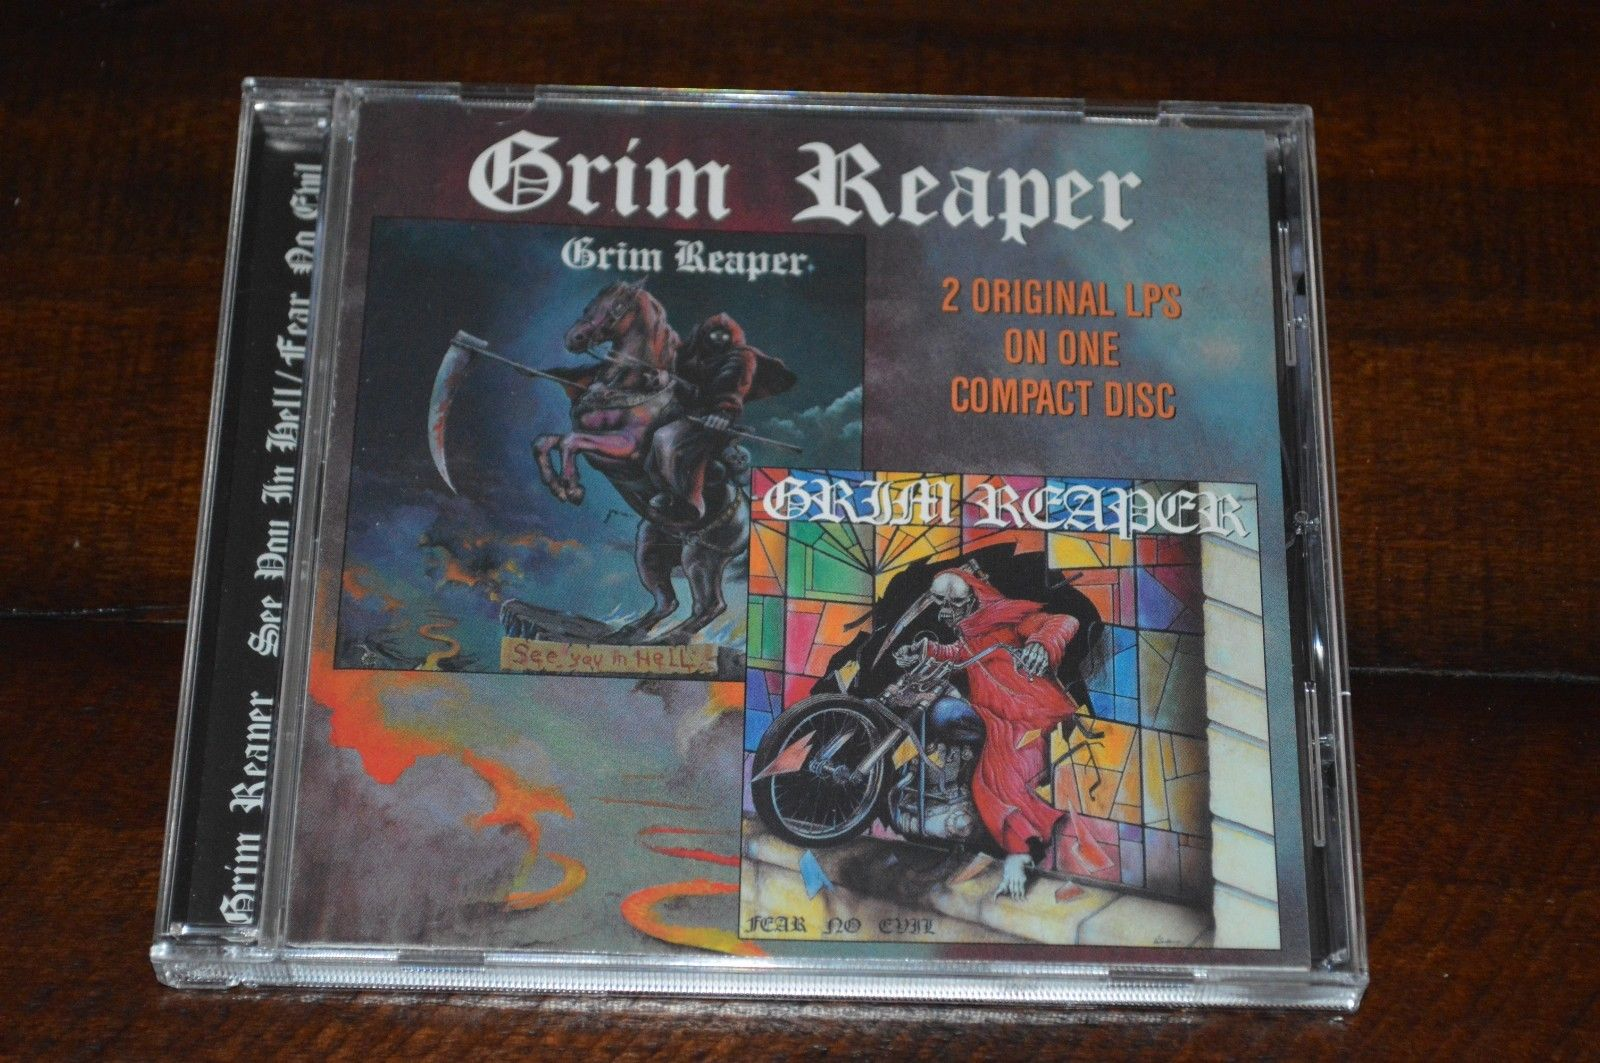 popsike com - GRIM REAPER - See You In Hell / Fear No Evil - CD